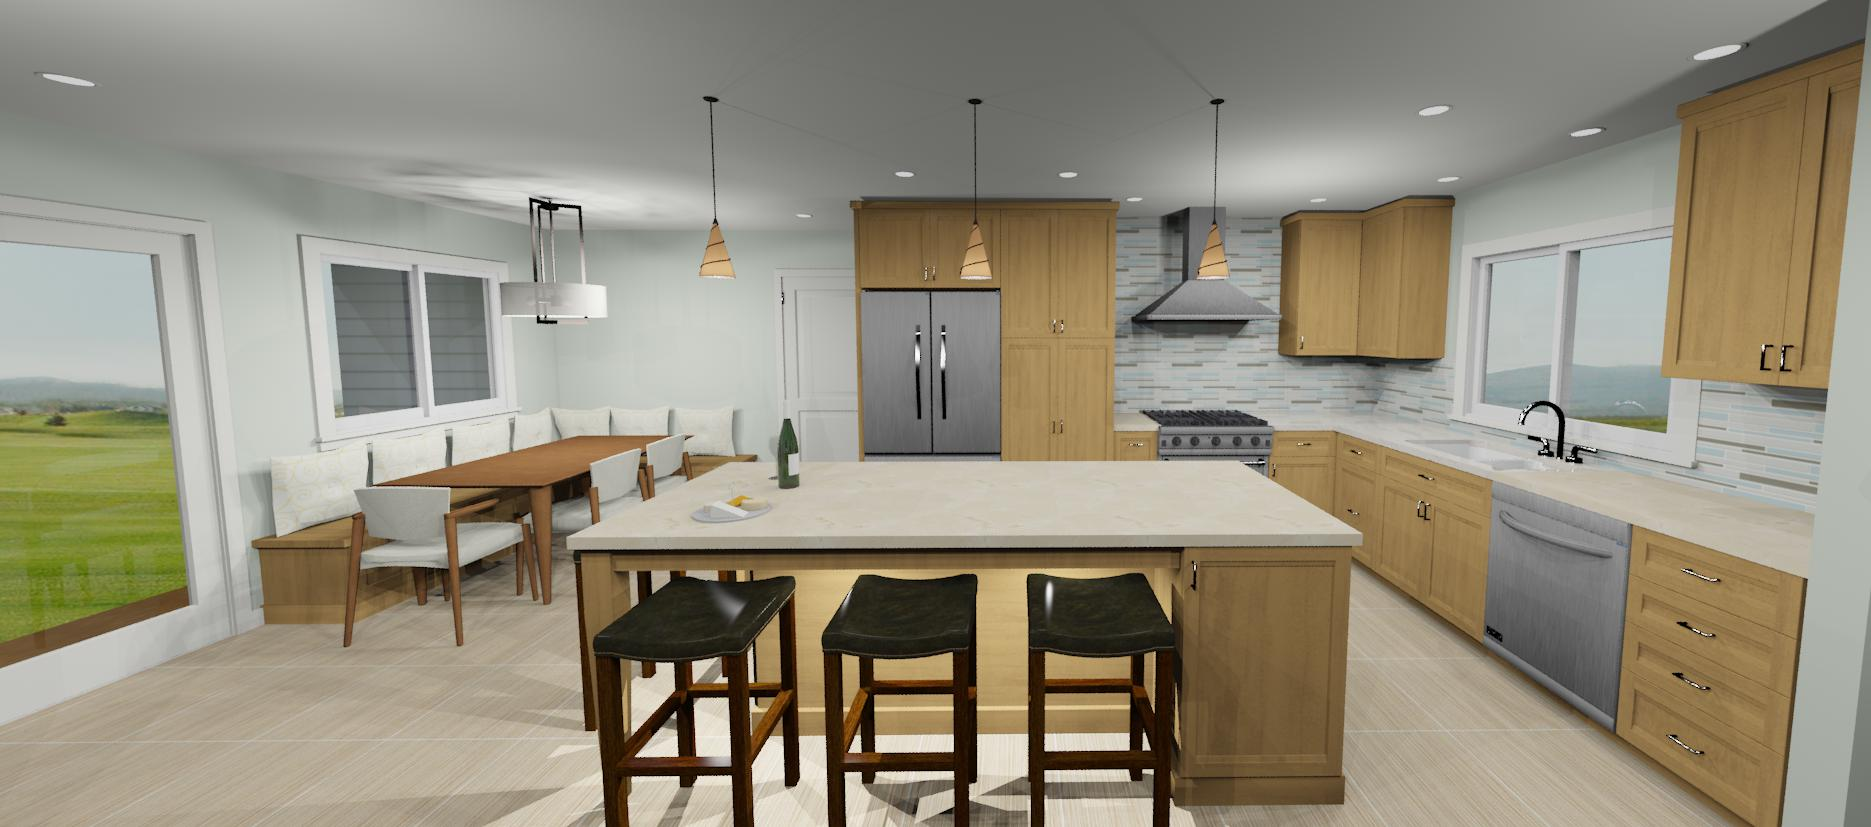 Live Oak Kitchen Remodel